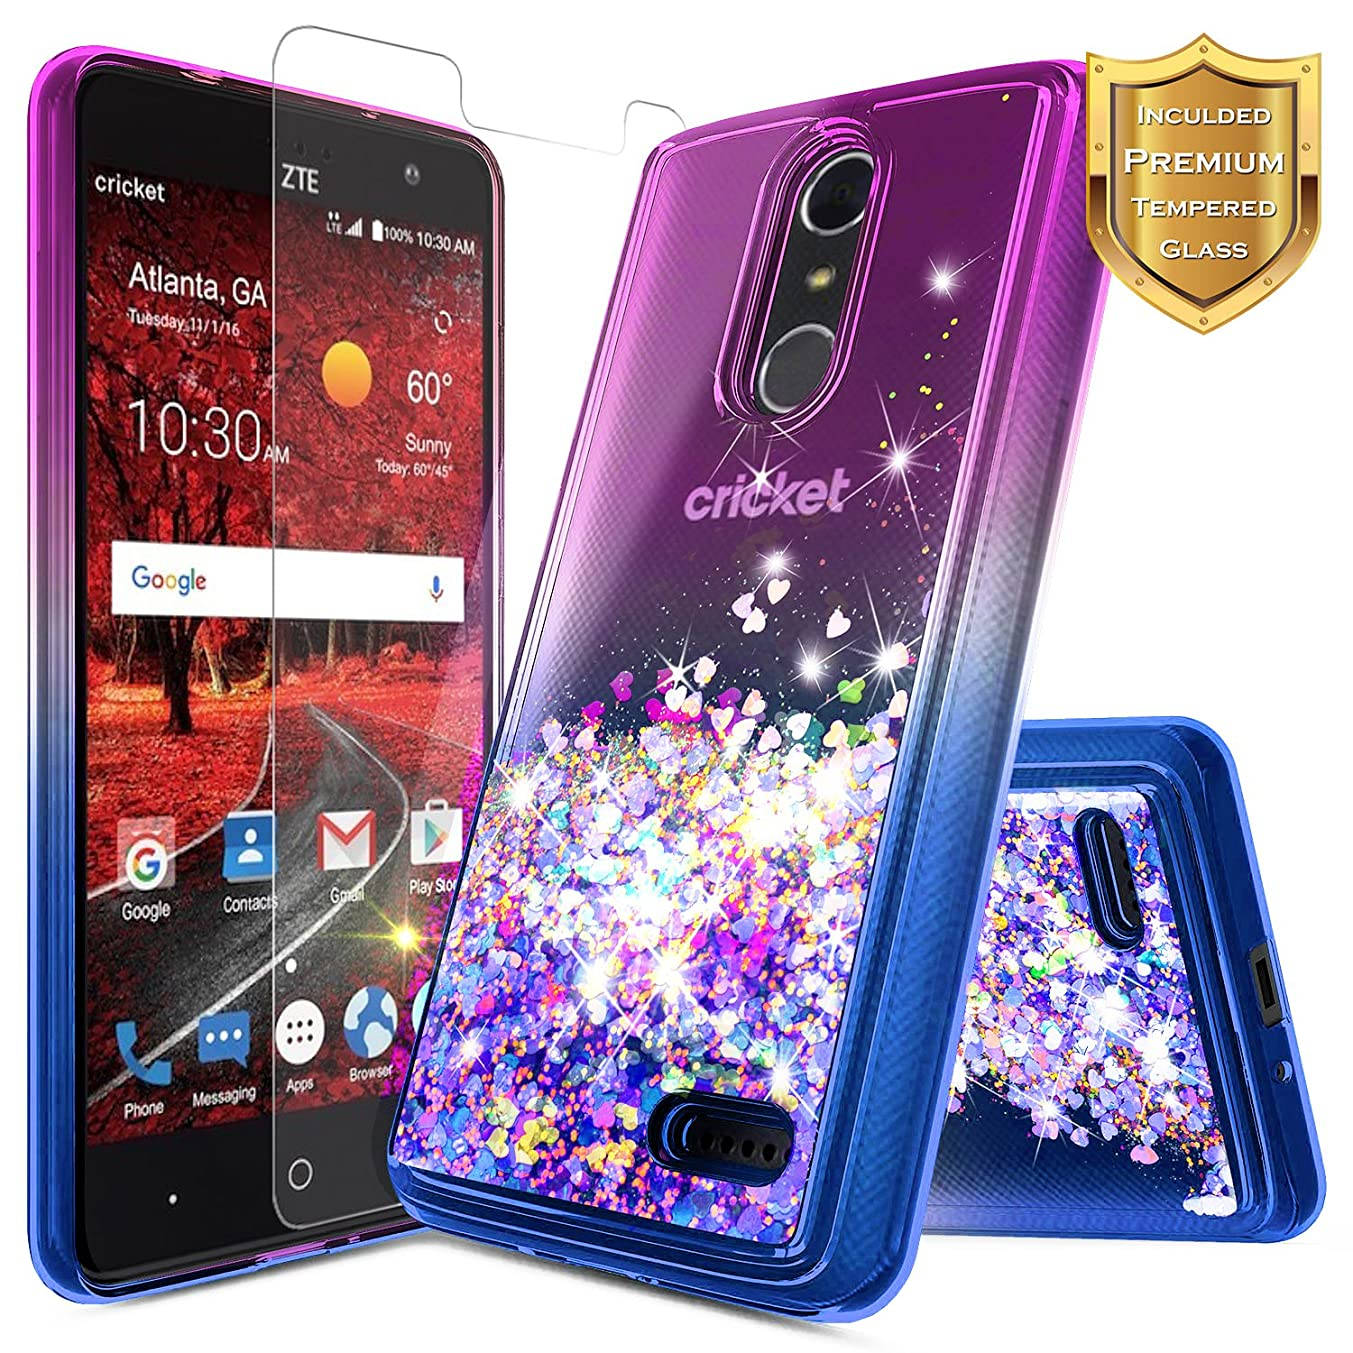 NageBee Compatible with ZTE Blade Spark (Z971) / ZMax One (Z719DL) / Grand X4 (Z956) w/[Tempered Glass Screen Protector], NageBee Glitter Liquid Quicksand Waterfall Sparkle Cute Case -Purple/Blue